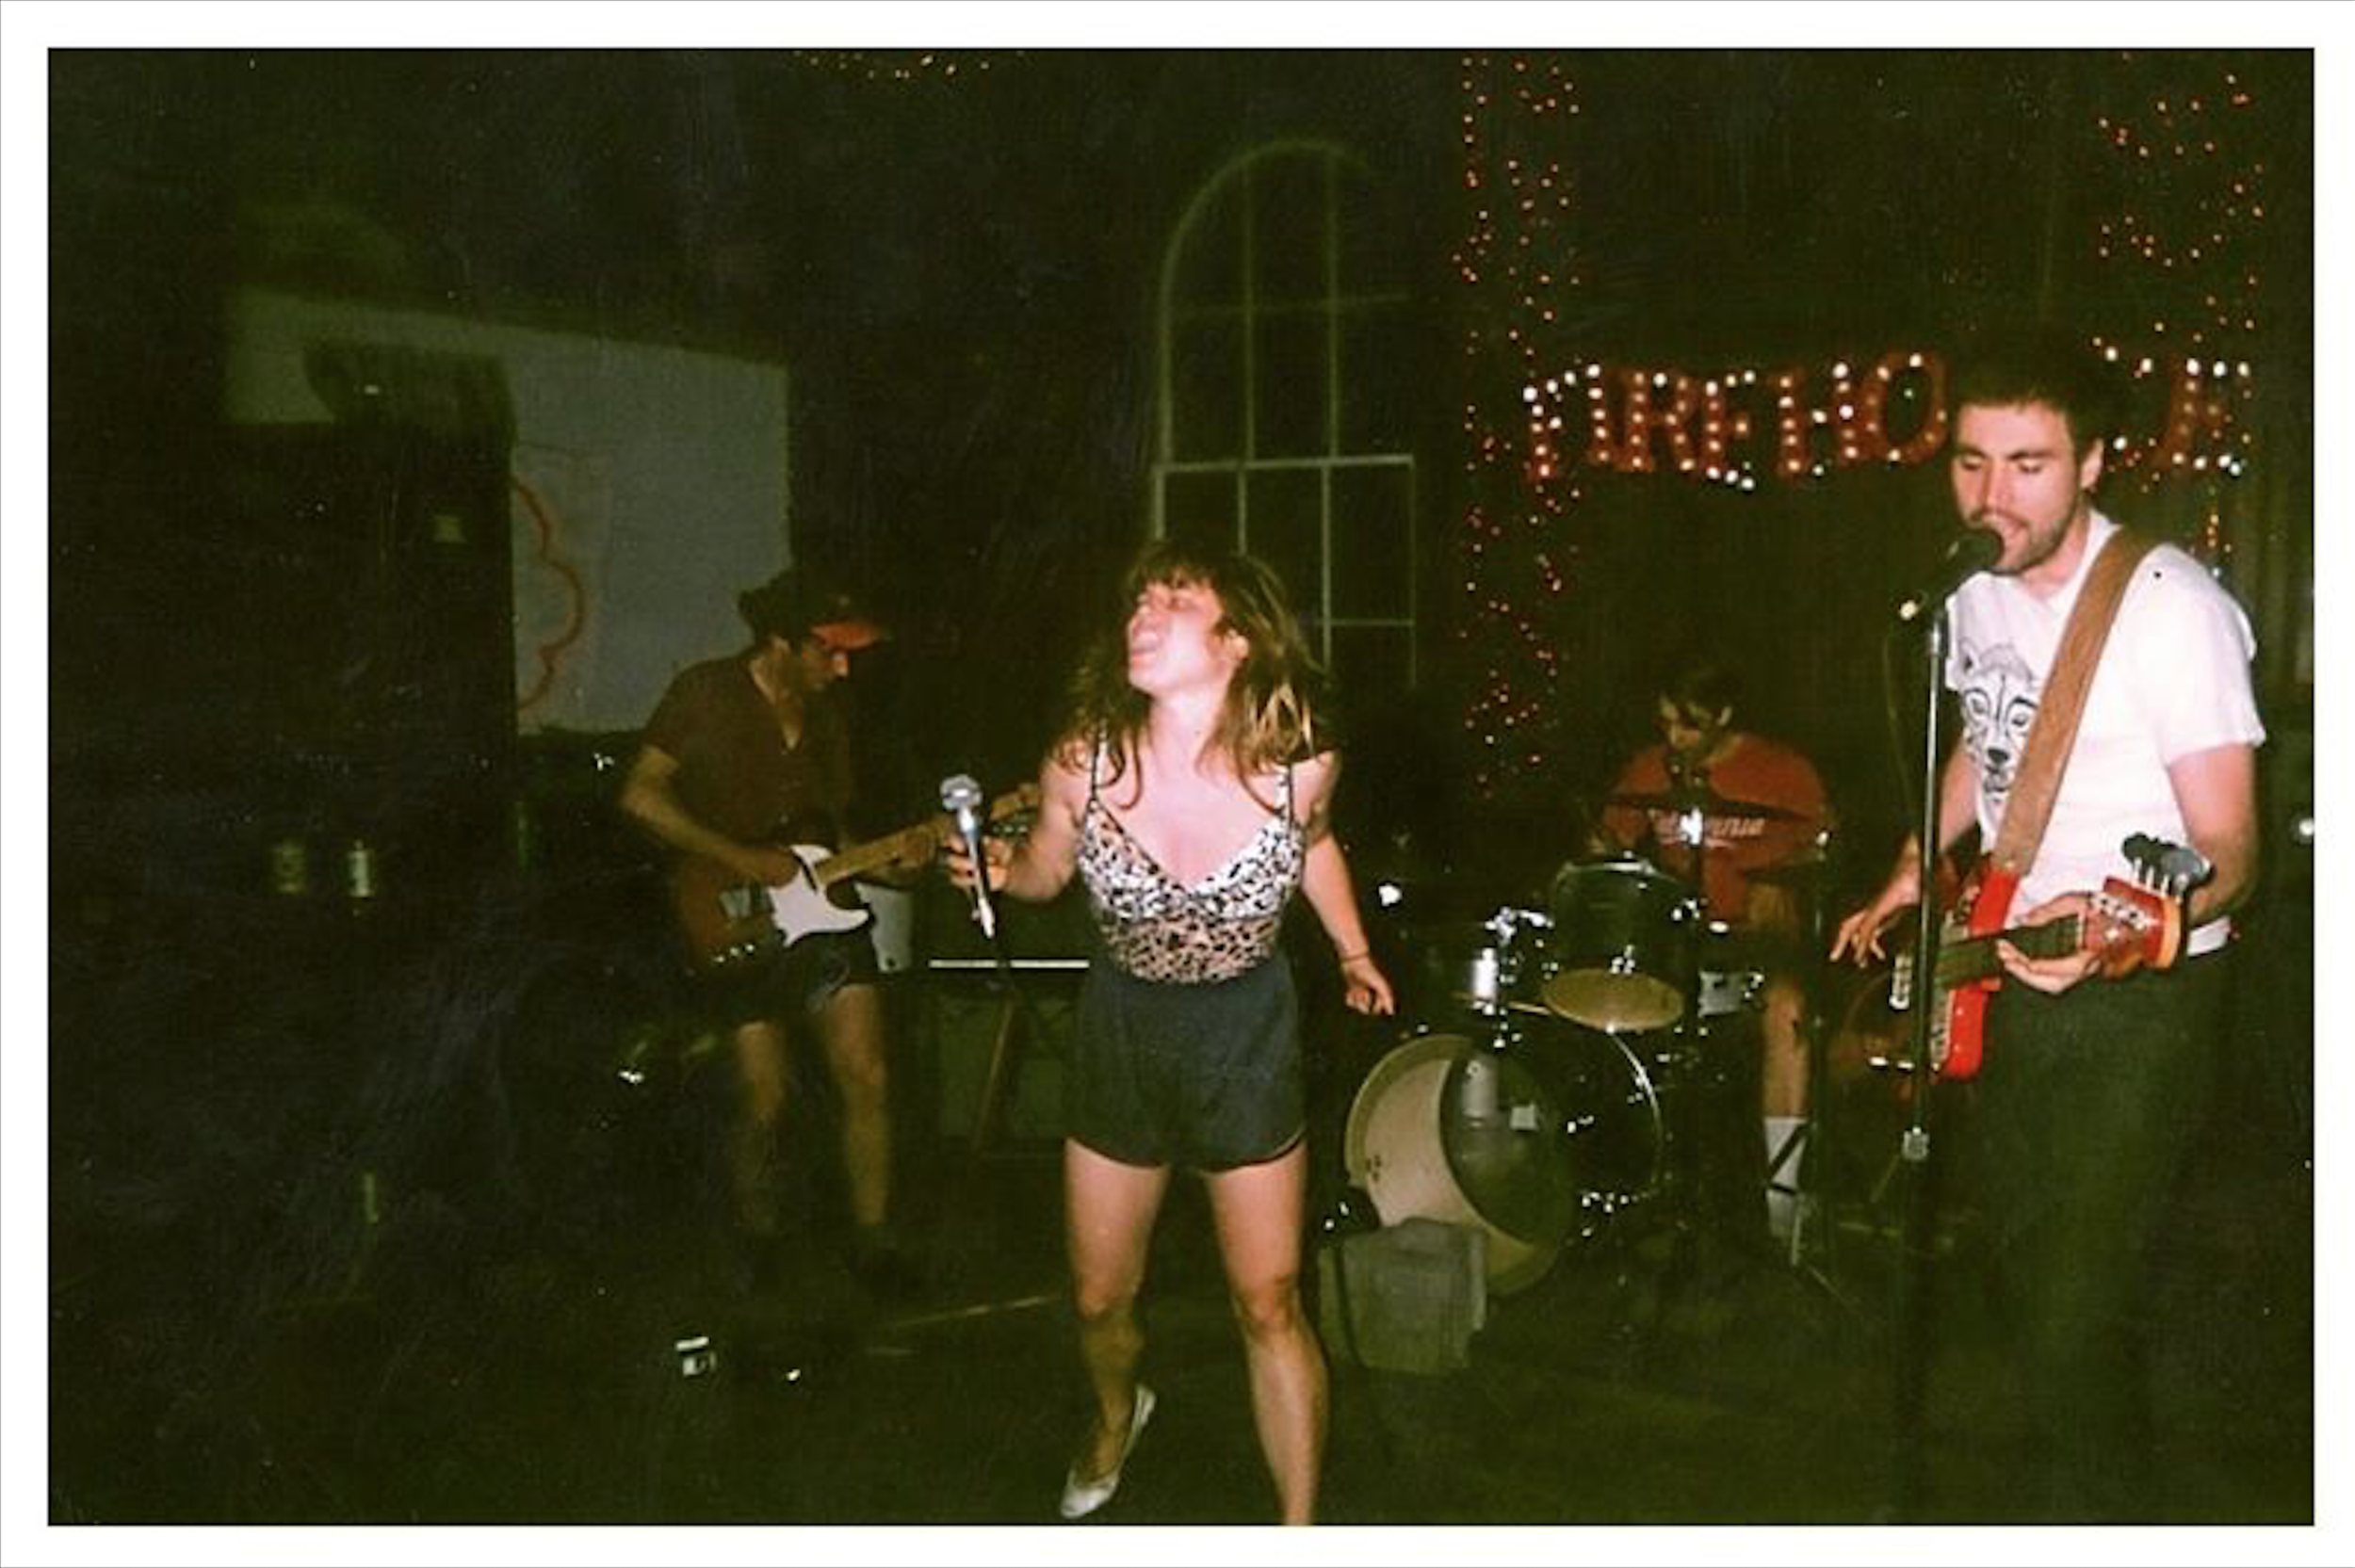 Secret Lover is a band from Worcester, MA - Led by Sally Horowitz, they've released a catalog of rock n roll music since 2011 that would eventually inspire and contribute to the film's soundtrack.